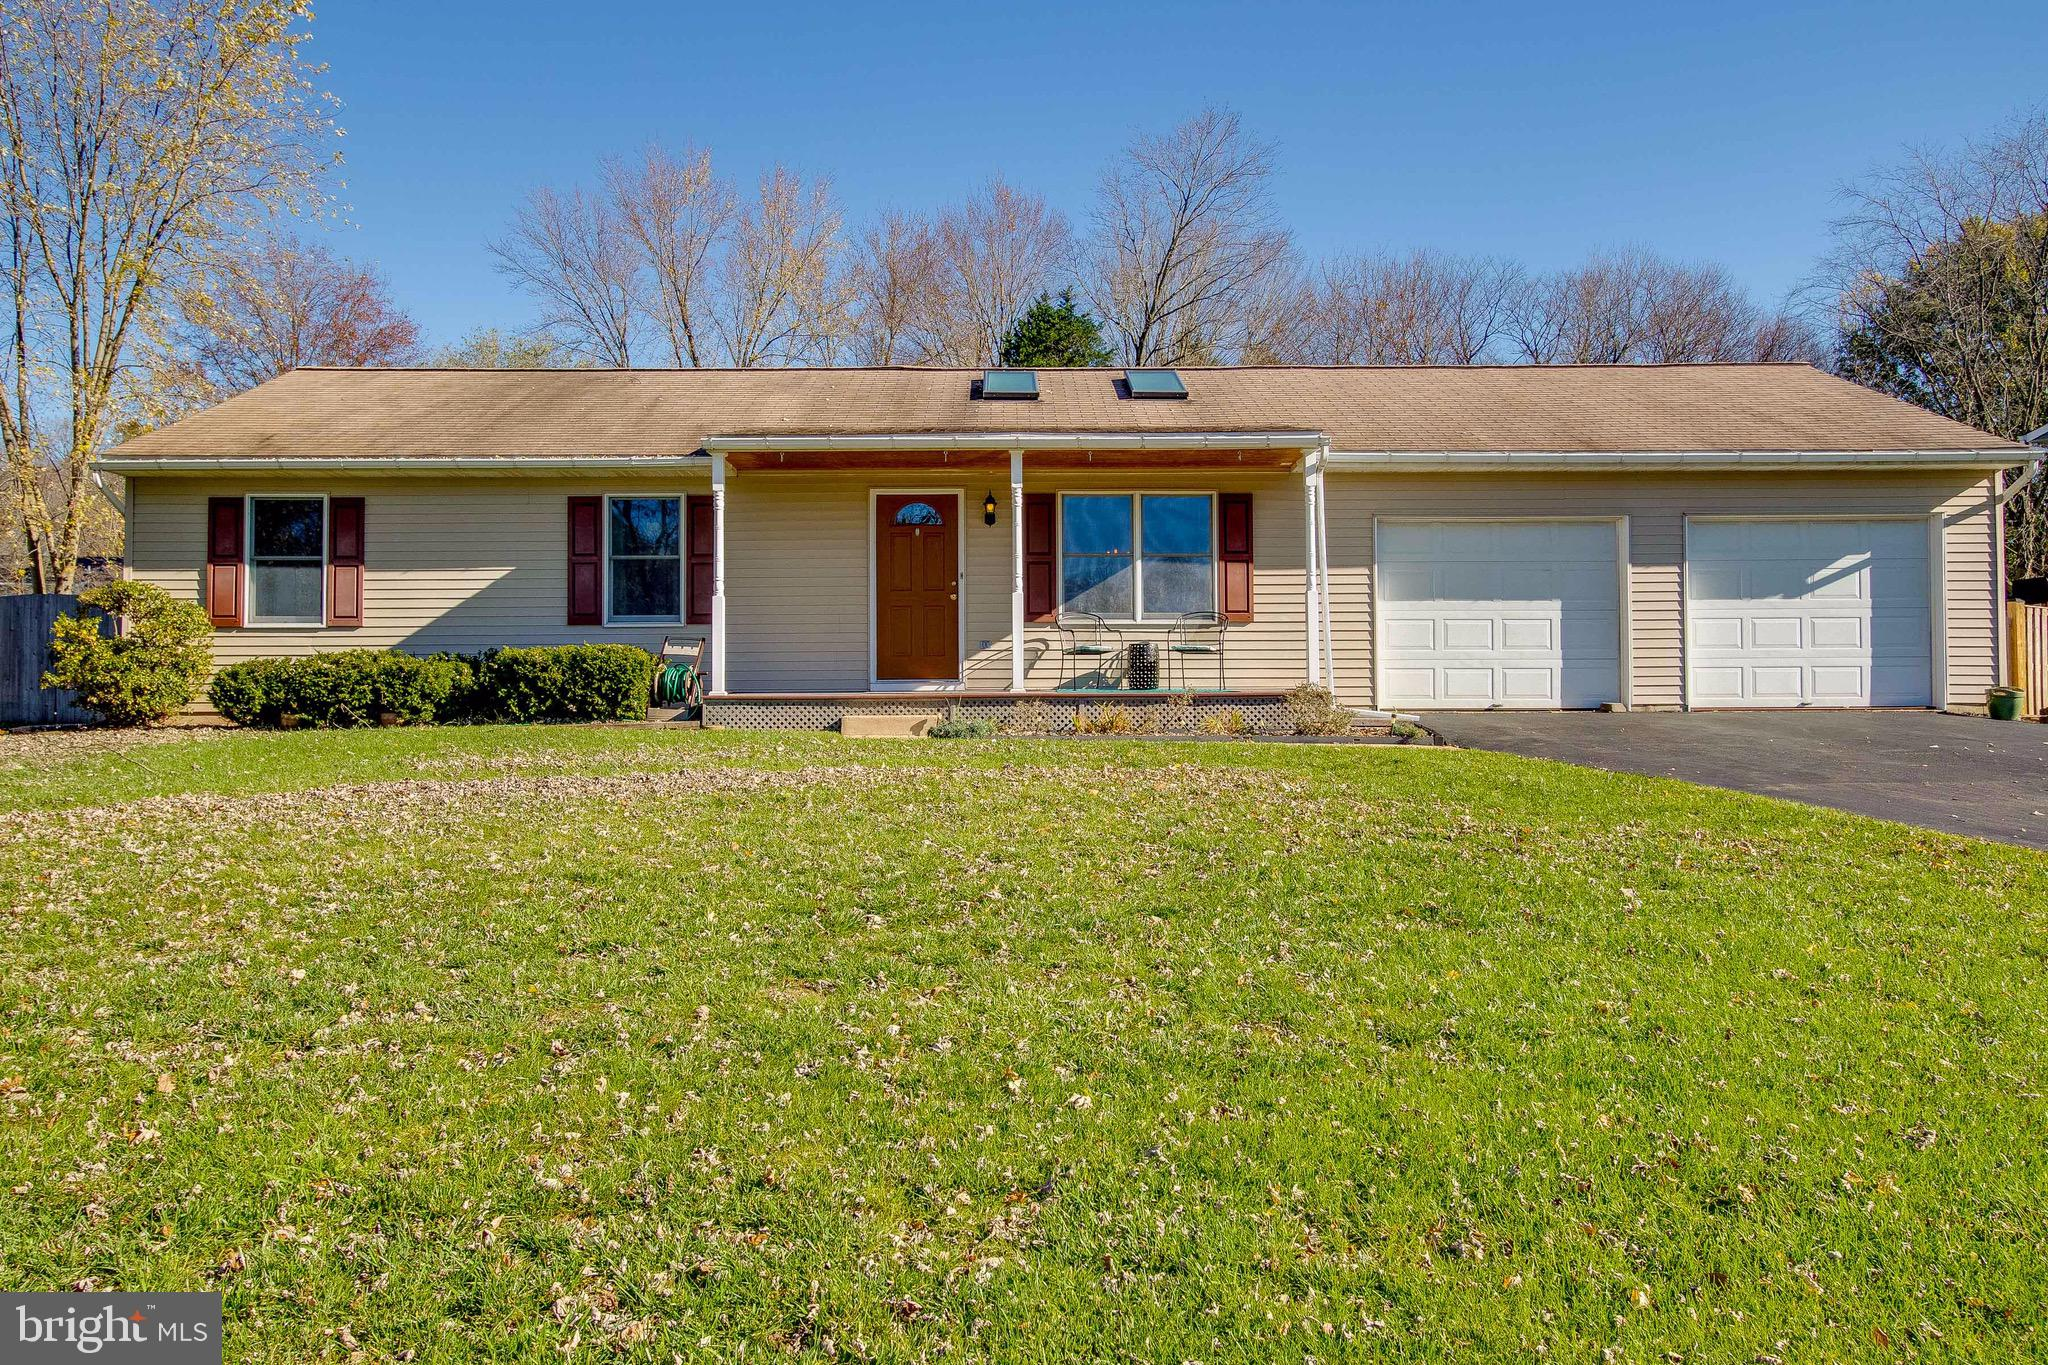 This one level Rambler offers four bedrooms and two full baths. An extension to the home provides a large family room that exits to a deck, along with a large master bedroom.  You are welcomed into a formal living room. A large country eat-in kitchen boasts newer stainless steel and plenty of cabinets. Enjoy the oversize family room that exits to a deck overlooking the back yard—a large master bedroom with cathedral ceiling and updated master bath and 3  additional nice-sized bedrooms.  The oversize two-car garage offers lots of possibilities. A beautiful level lot comes fenced with two sheds. Updates include updated windows and HVAC